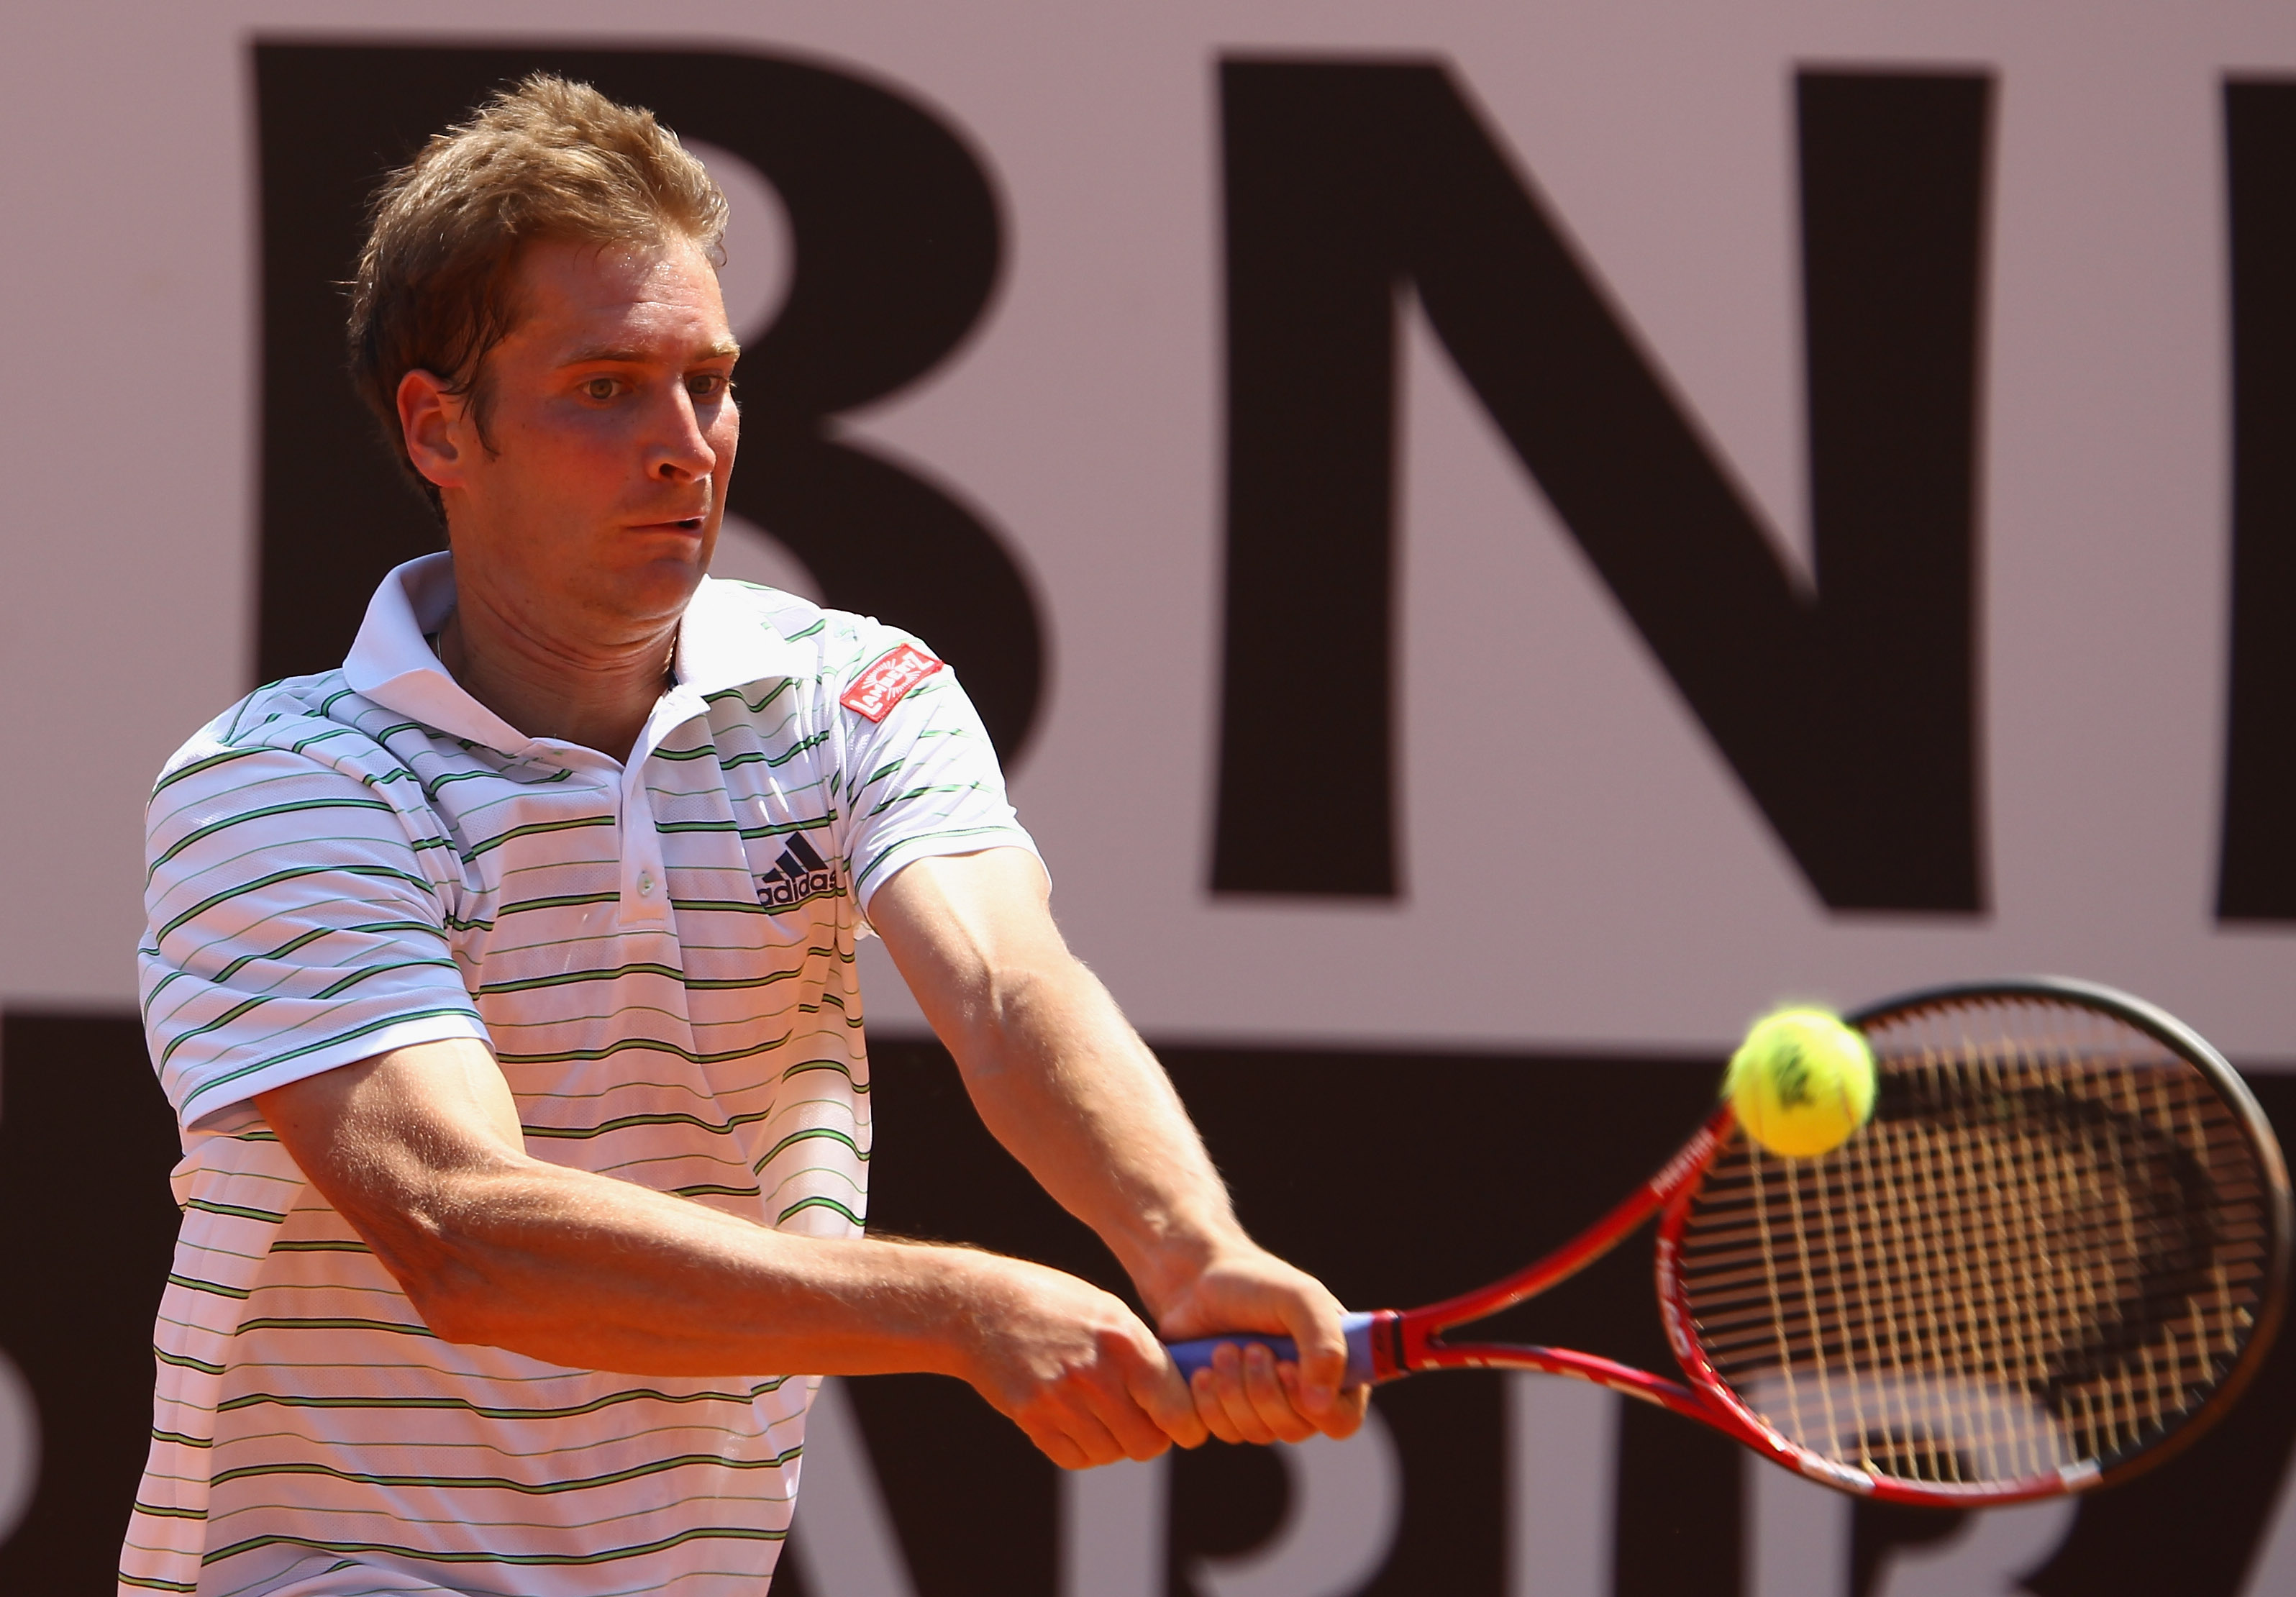 ROME, ITALY - MAY 13:  Florian Mayer of Germany plays a backhand during his quarter final match against Andy Murray of Great Britain during day six of the Internazoinali BNL D'Italia at the Foro Italico Tennis Centre  on May 13, 2011 in Rome, Italy.  (Pho